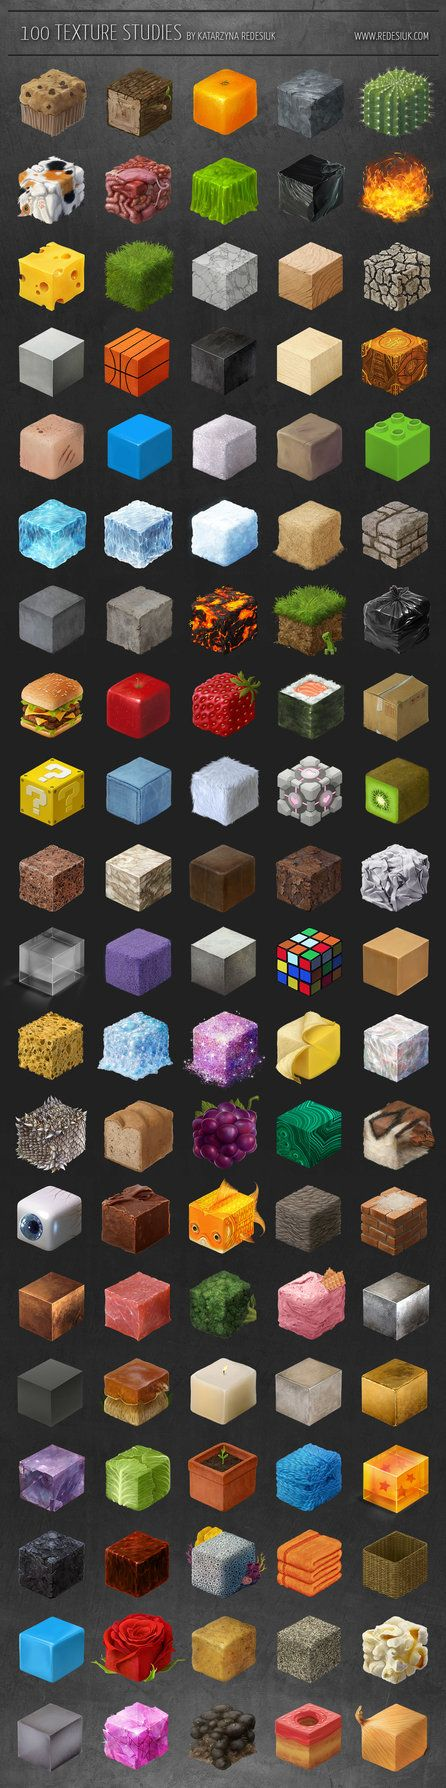 100 texture studies [ Label:Other] [ Content:digitalart/paintings/other] by - tanathe